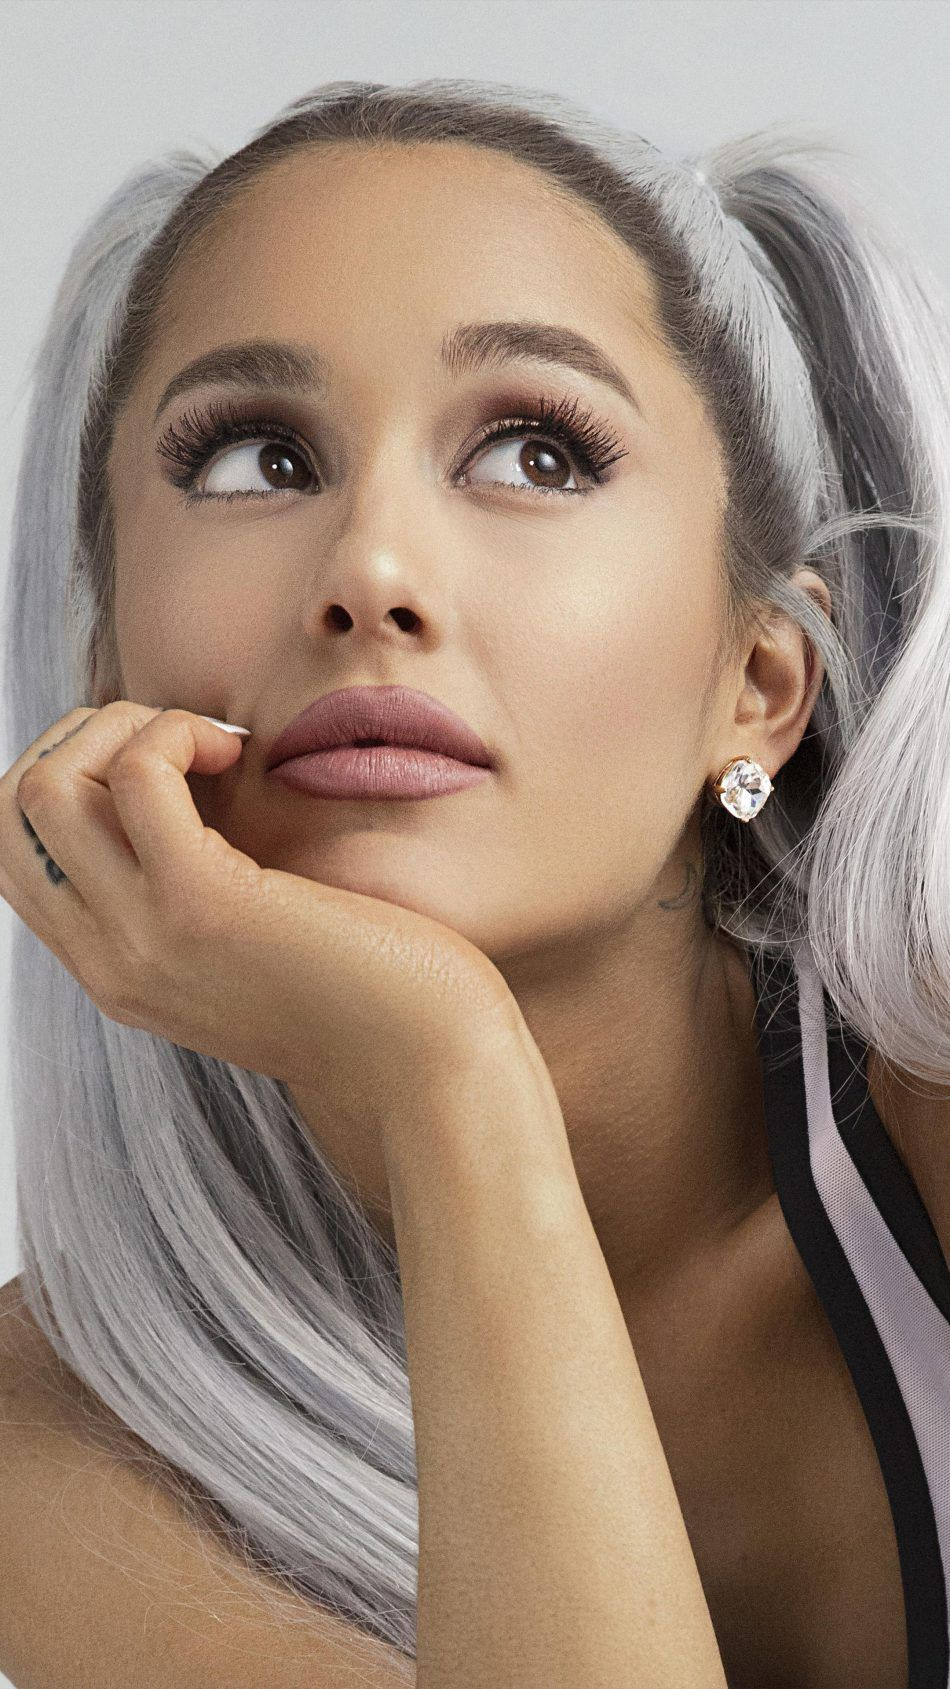 Ariana Grande Cute Photoshoot 2018 Ariana grande cute